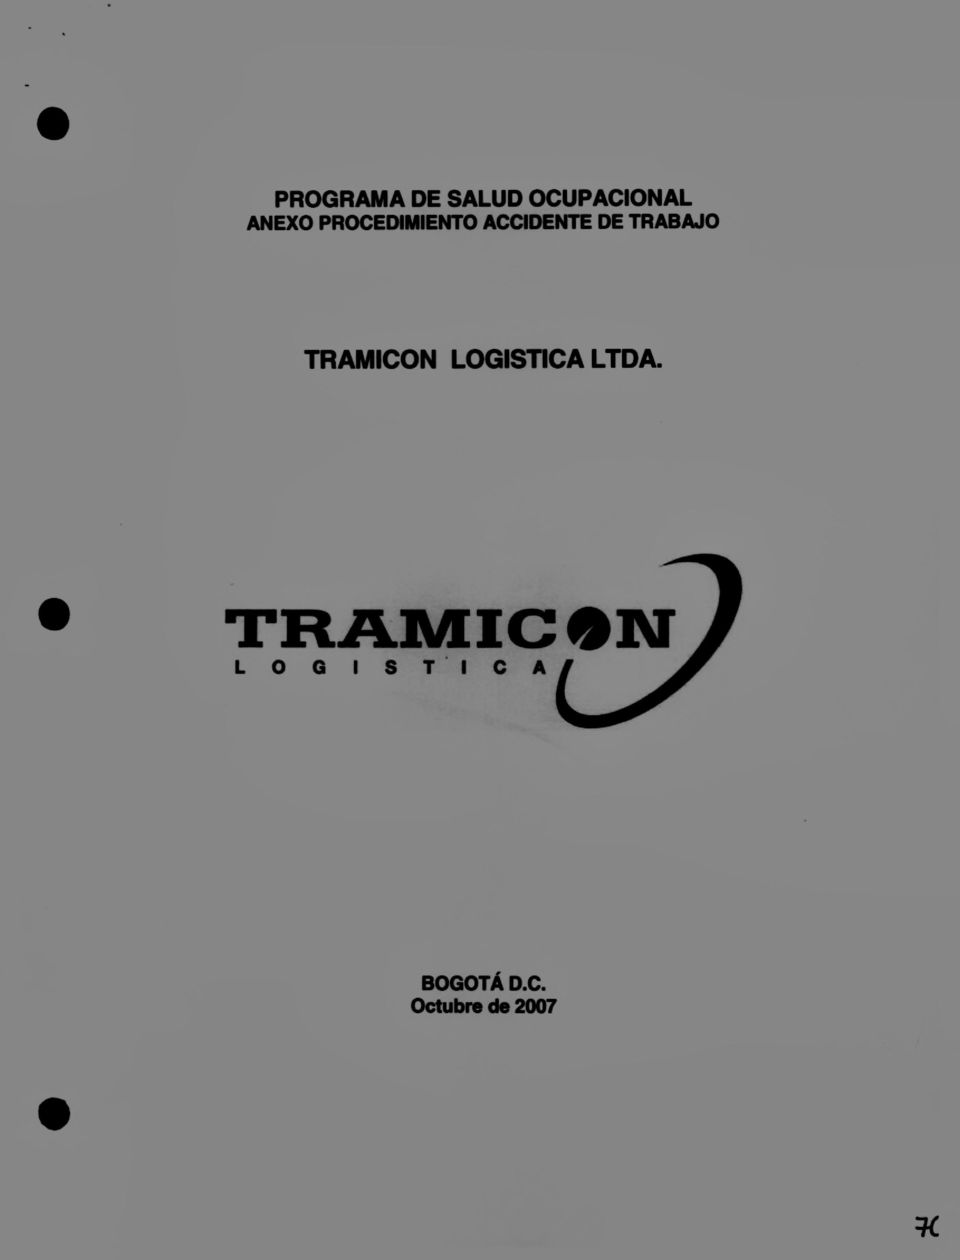 TRAMICON LOGISTICA LTOA. TRAMIC.